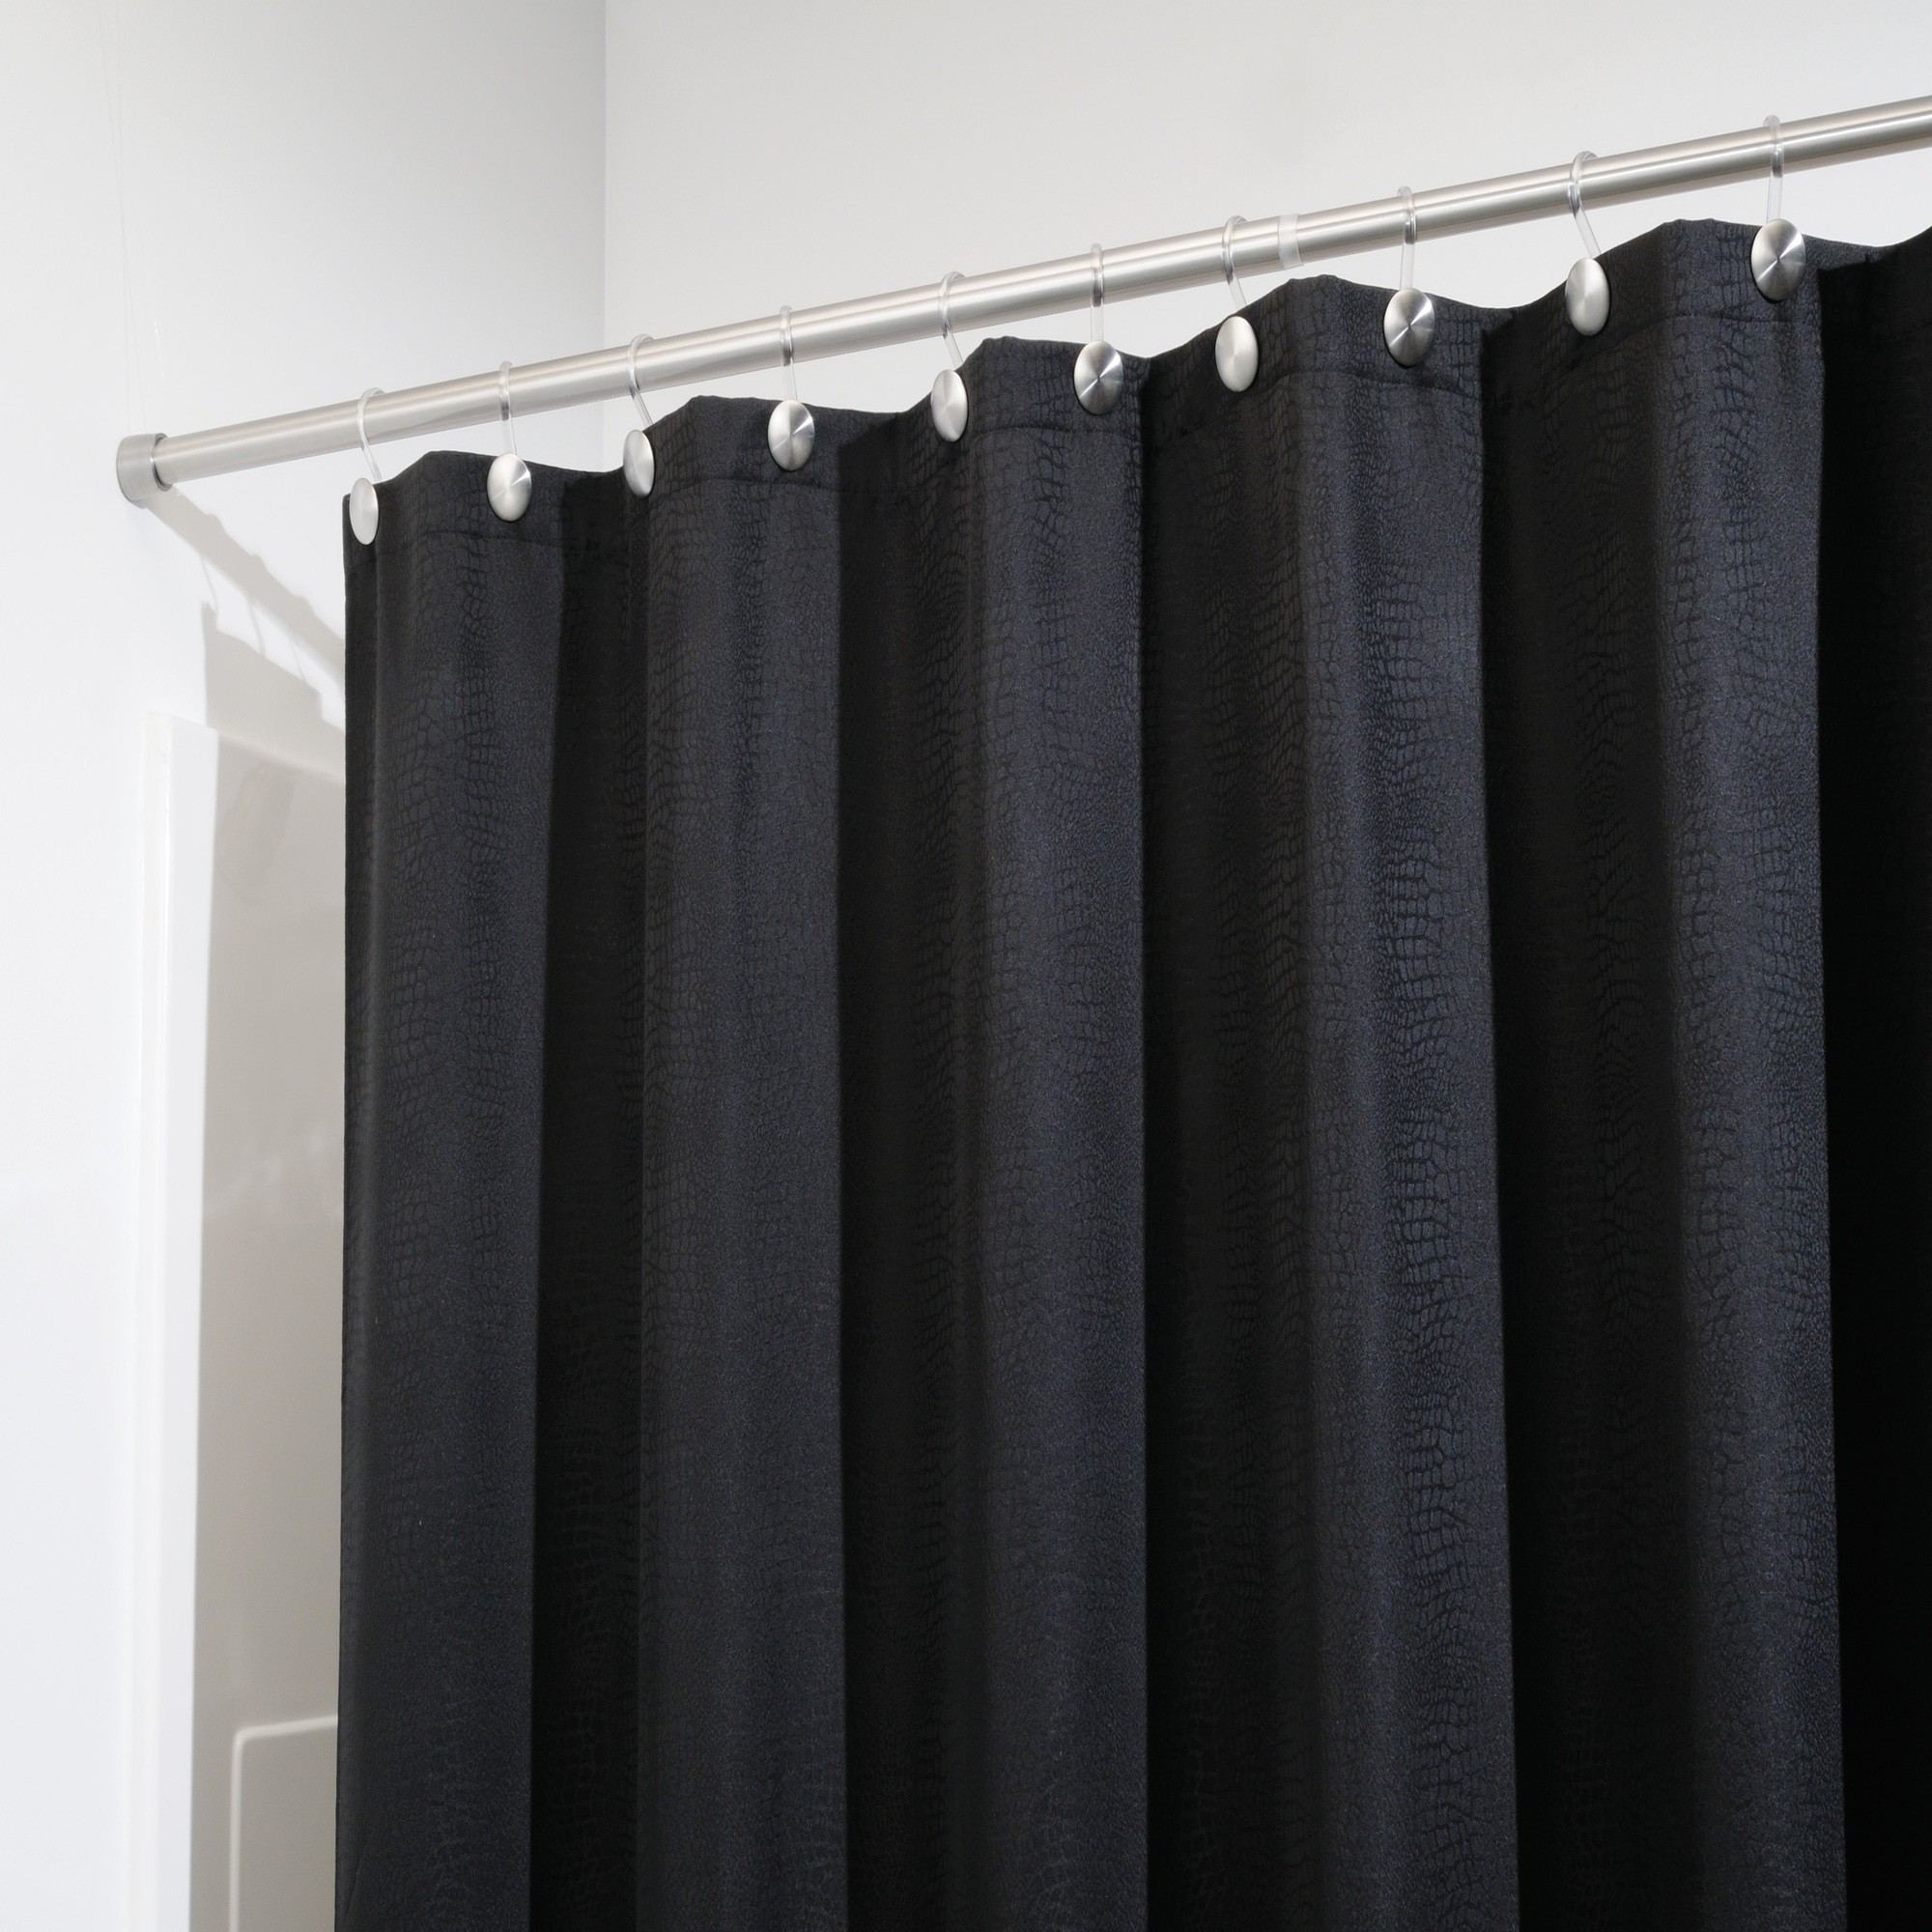 Exciting Bathroom Decor Ideas with Shower Curtain Tension Rod: Tension Shower Curtain Rods | Shower Curtain Rod Length | Shower Curtain Tension Rod